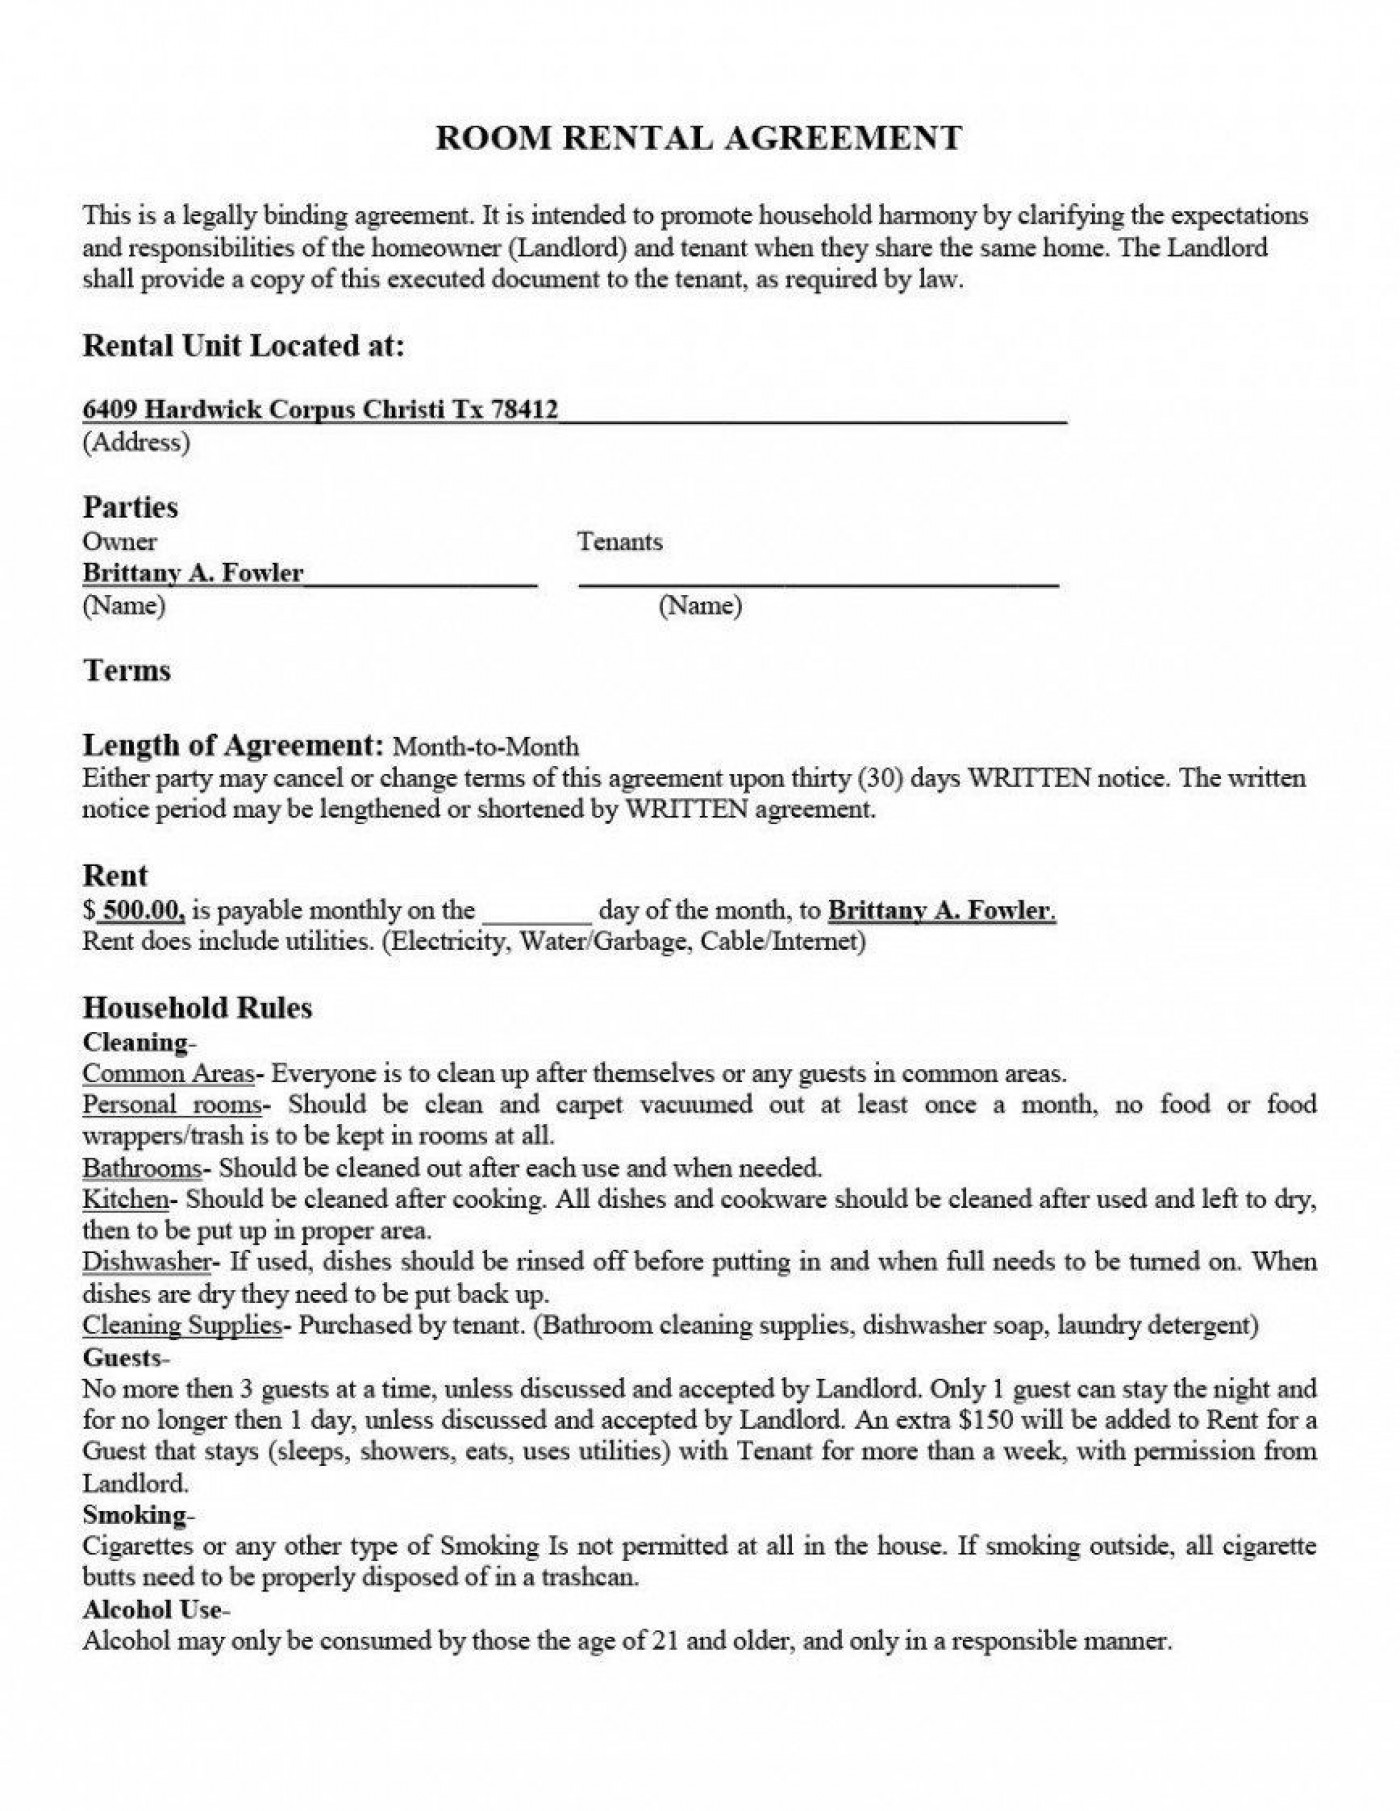 001 Unusual Housing Rental Agreement Template Free Highest Clarity 1400